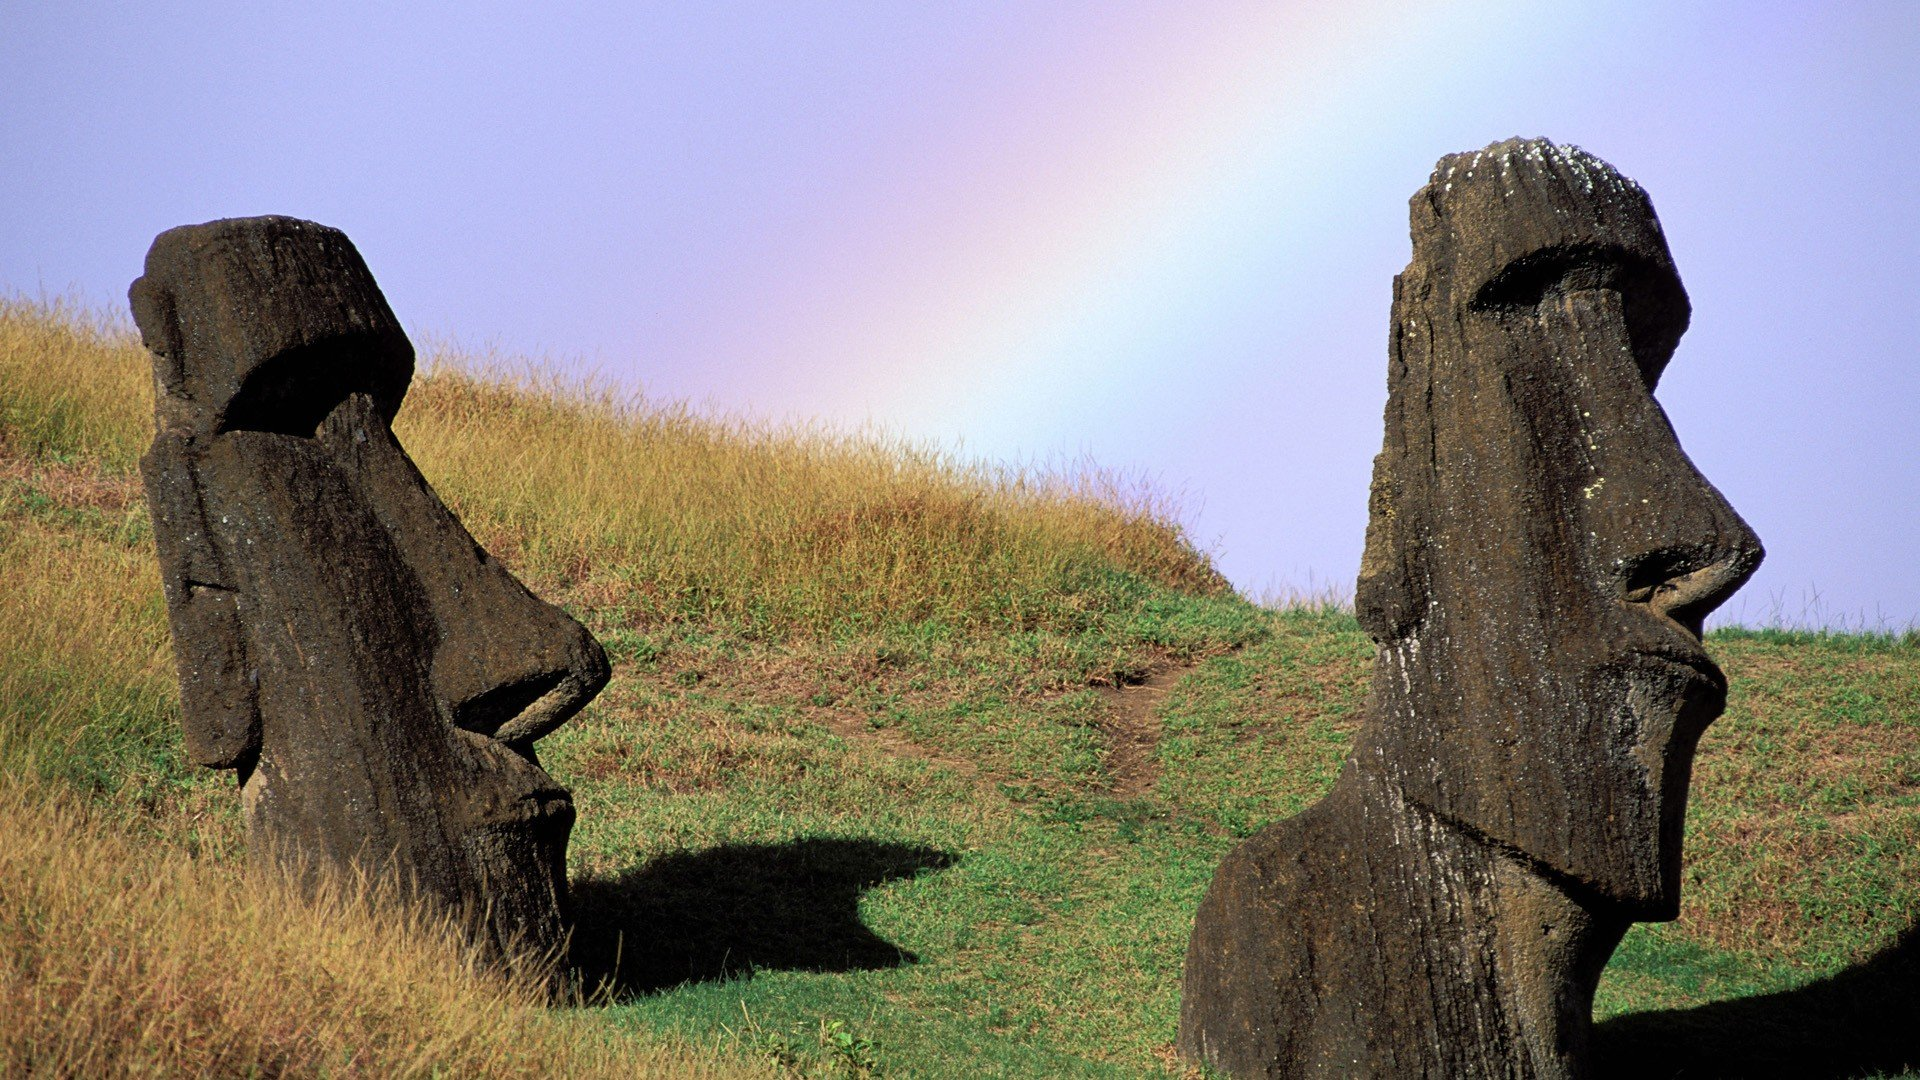 Chile Easter Island moai wallpaper 1920x1080 346158 WallpaperUP 1920x1080